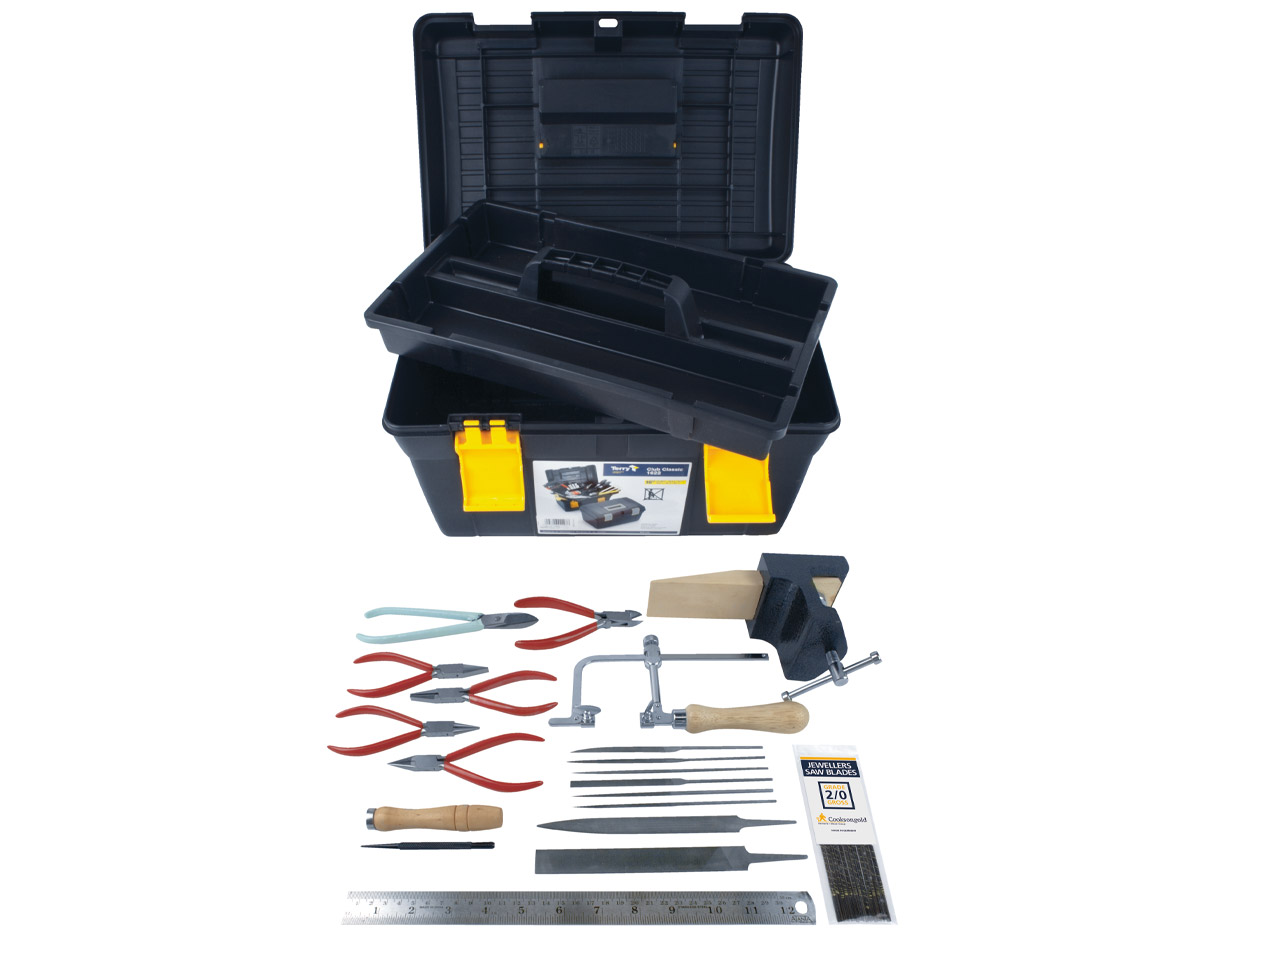 Workbench Tool Kit